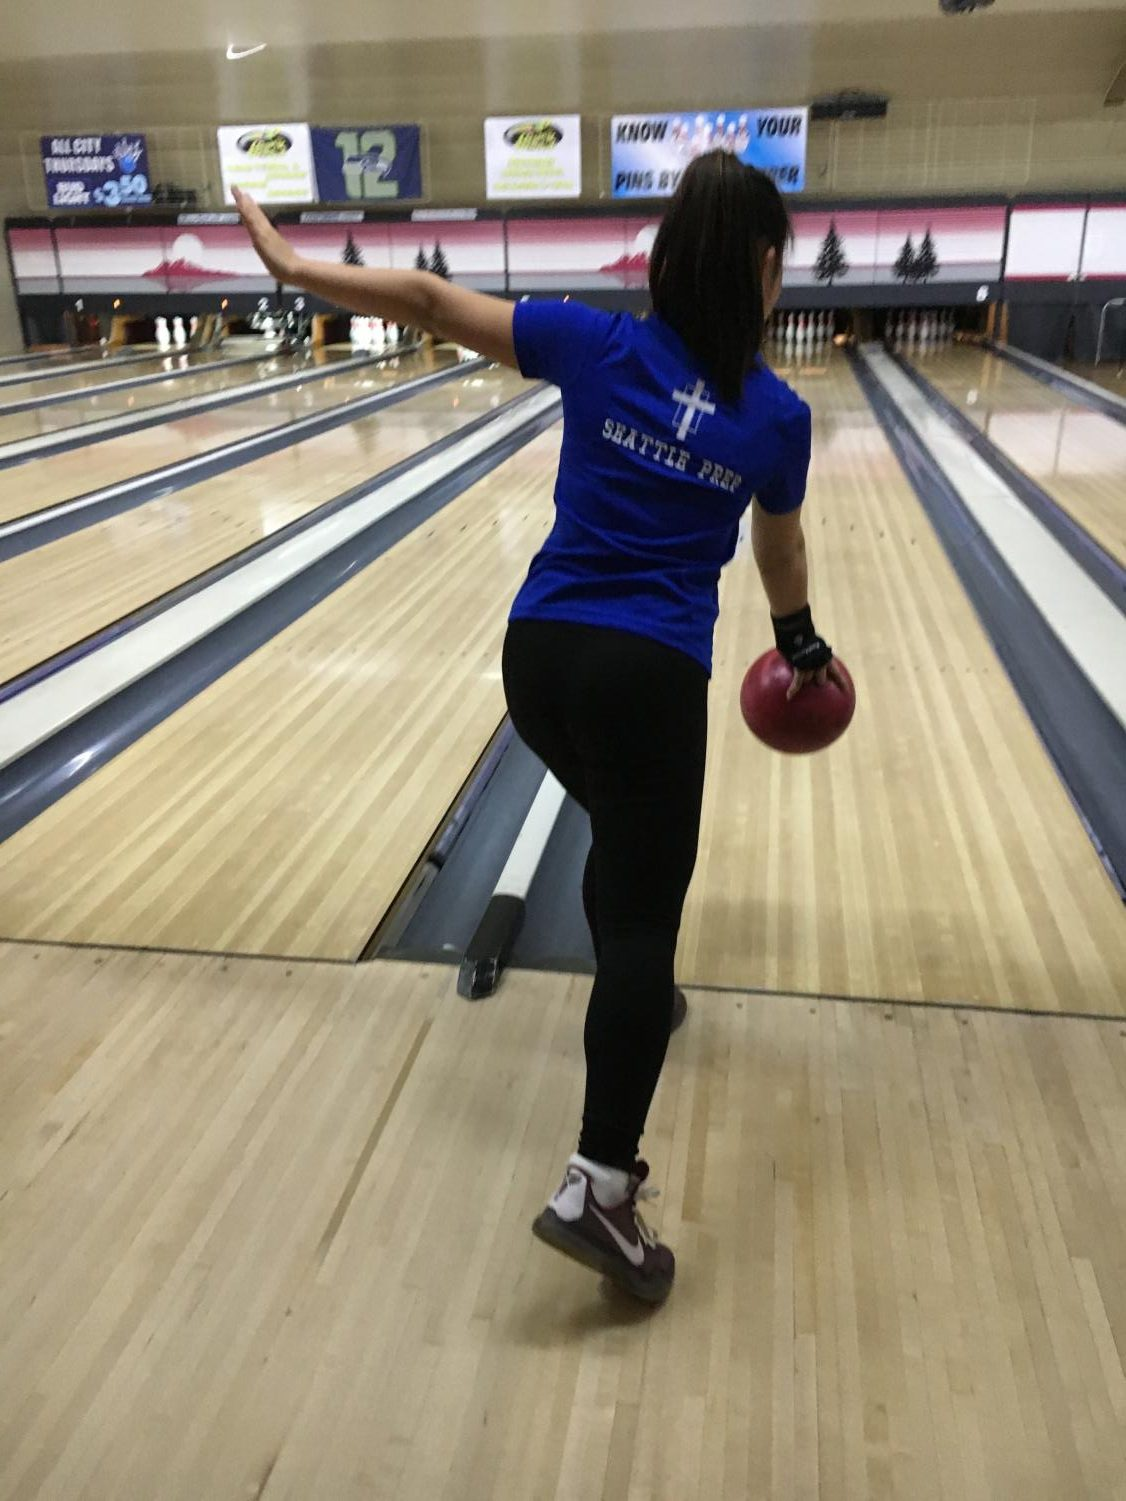 Sydney Shimizu '21 bowls at a recent match. Shimizu is one of two freshmen on the team and enjoys the support of her coaches and teammates.